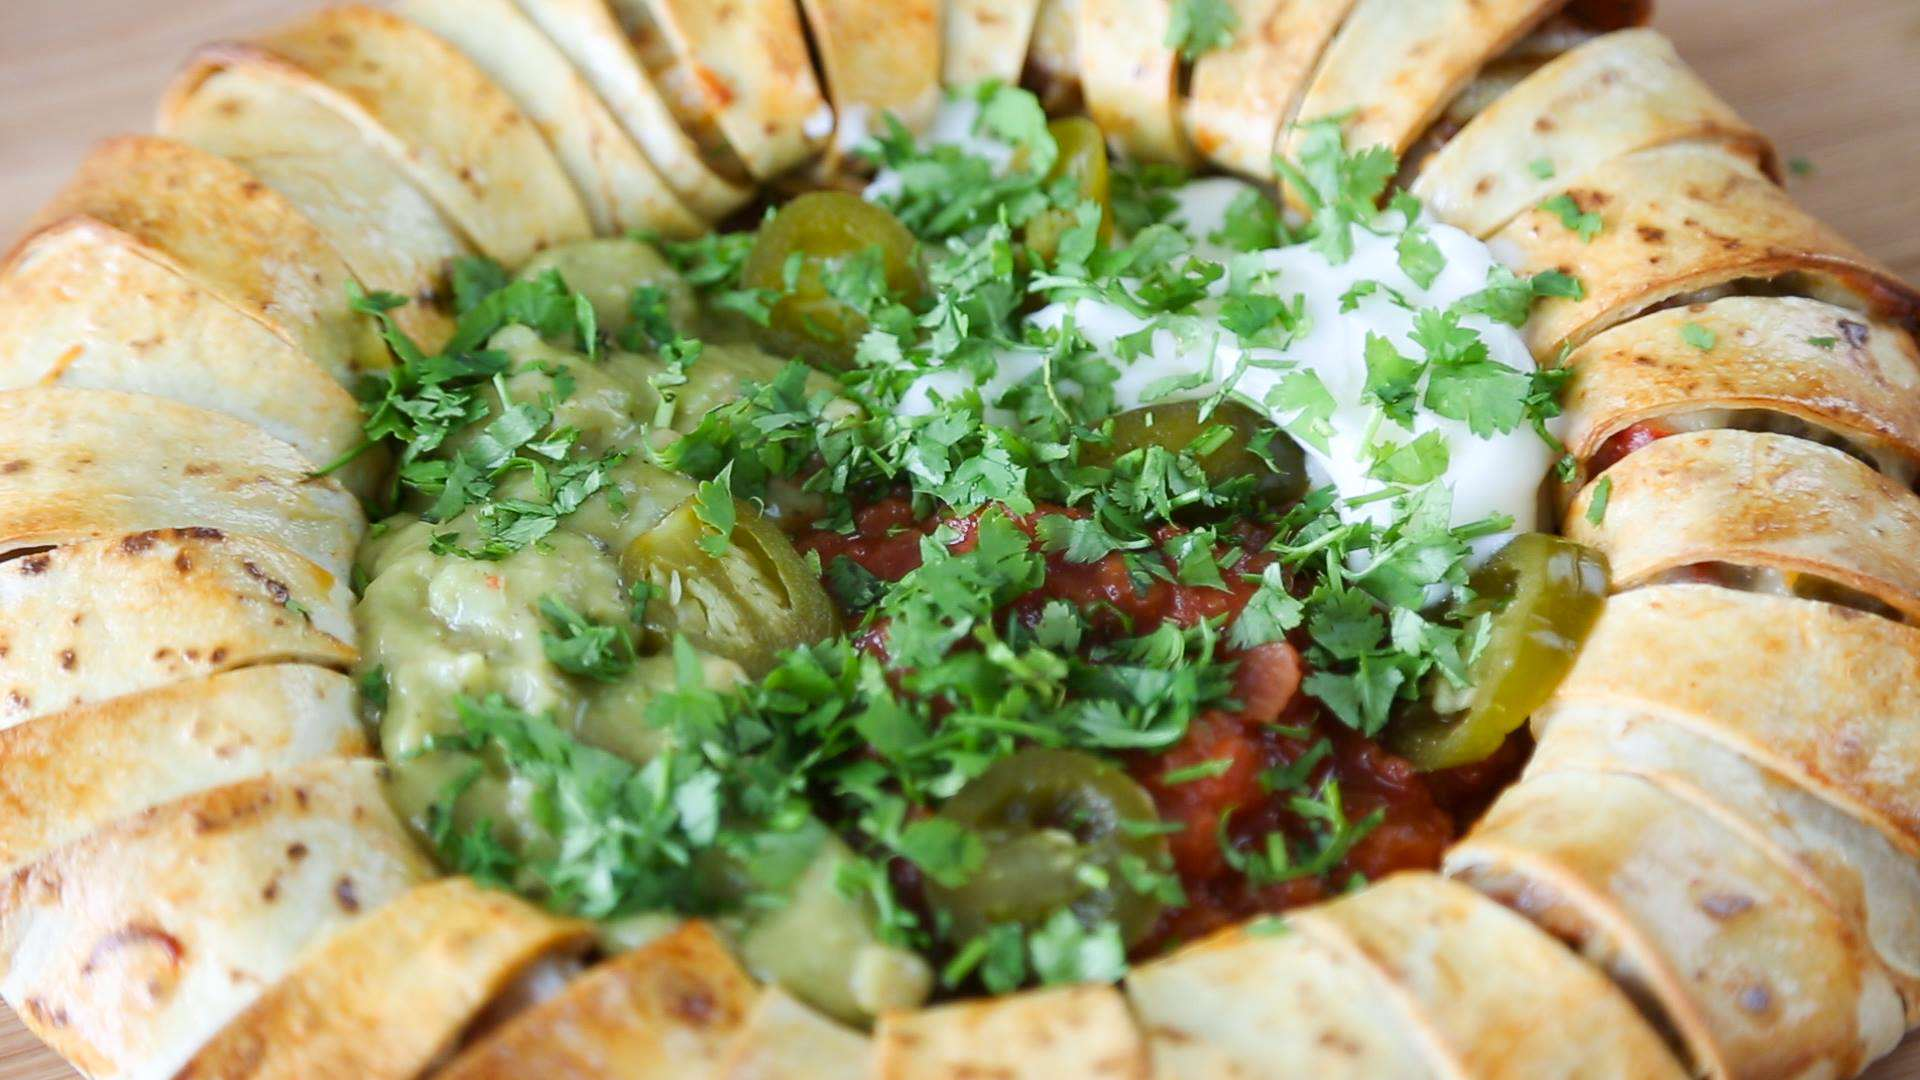 13453058 10154262058776323 1178009878 o Heres How You Make A Chilli Tortilla Ring